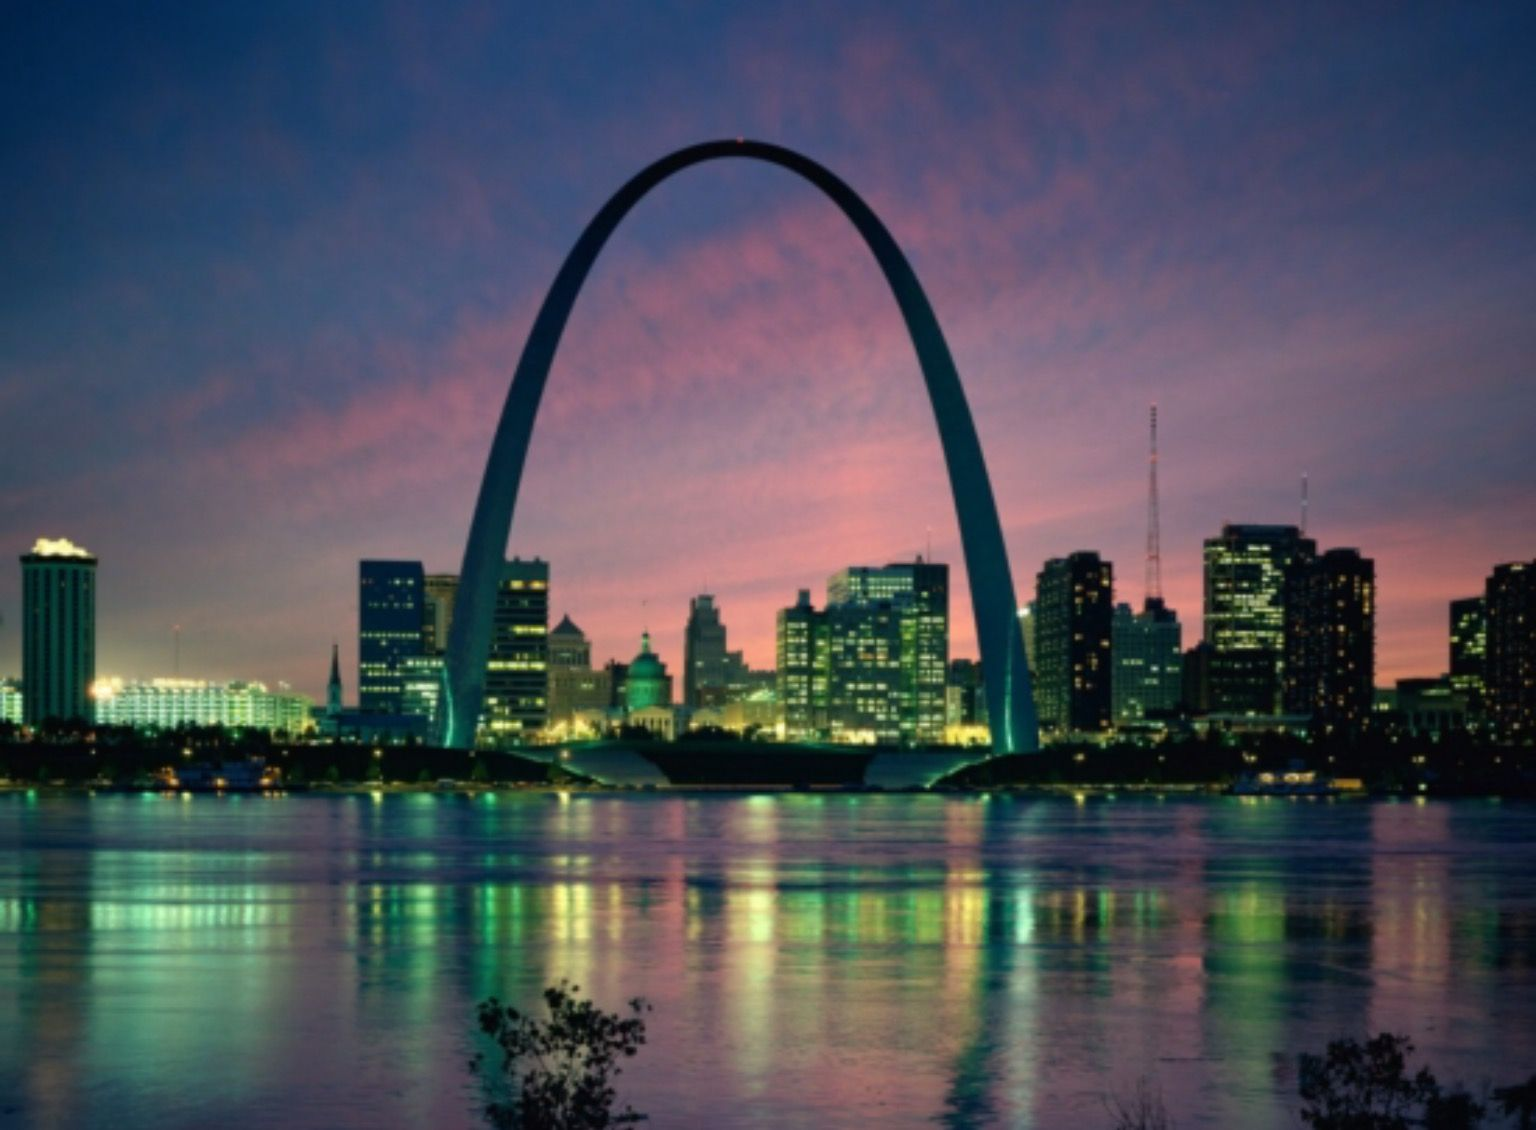 Pin by BB on Architecture Cityscape wallpaper, St louis